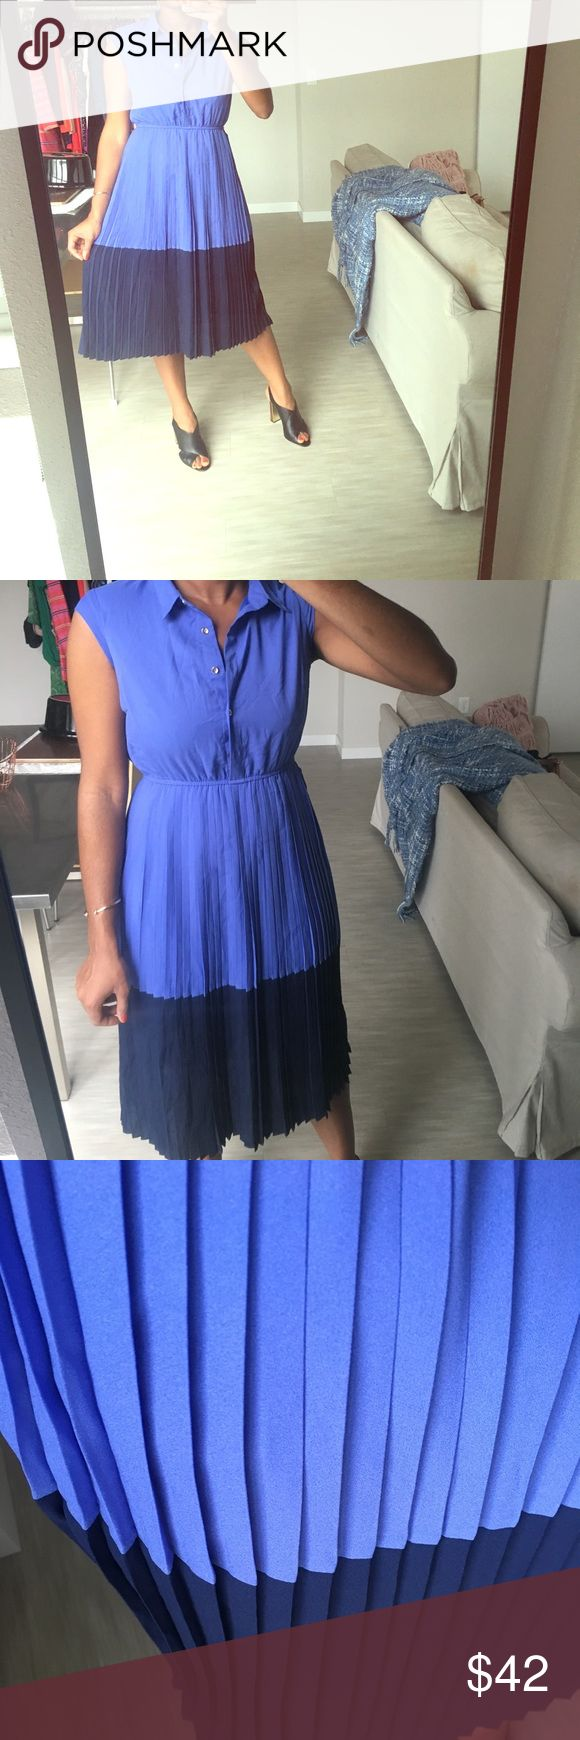 ASOS pleated midi dress This dress by Sugar Hill (sold on ASOS) is so classy and beautiful for spring, summer and even fall! Wore once for a bridal shower and it was perfect! Hits at the shin, size 8. Love it paired with my Calvin Klein heels (also for sale!) for a work day or evening out💁🏽 ✨Always welcome reasonable offers through the button✨ ASOS Dresses Midi